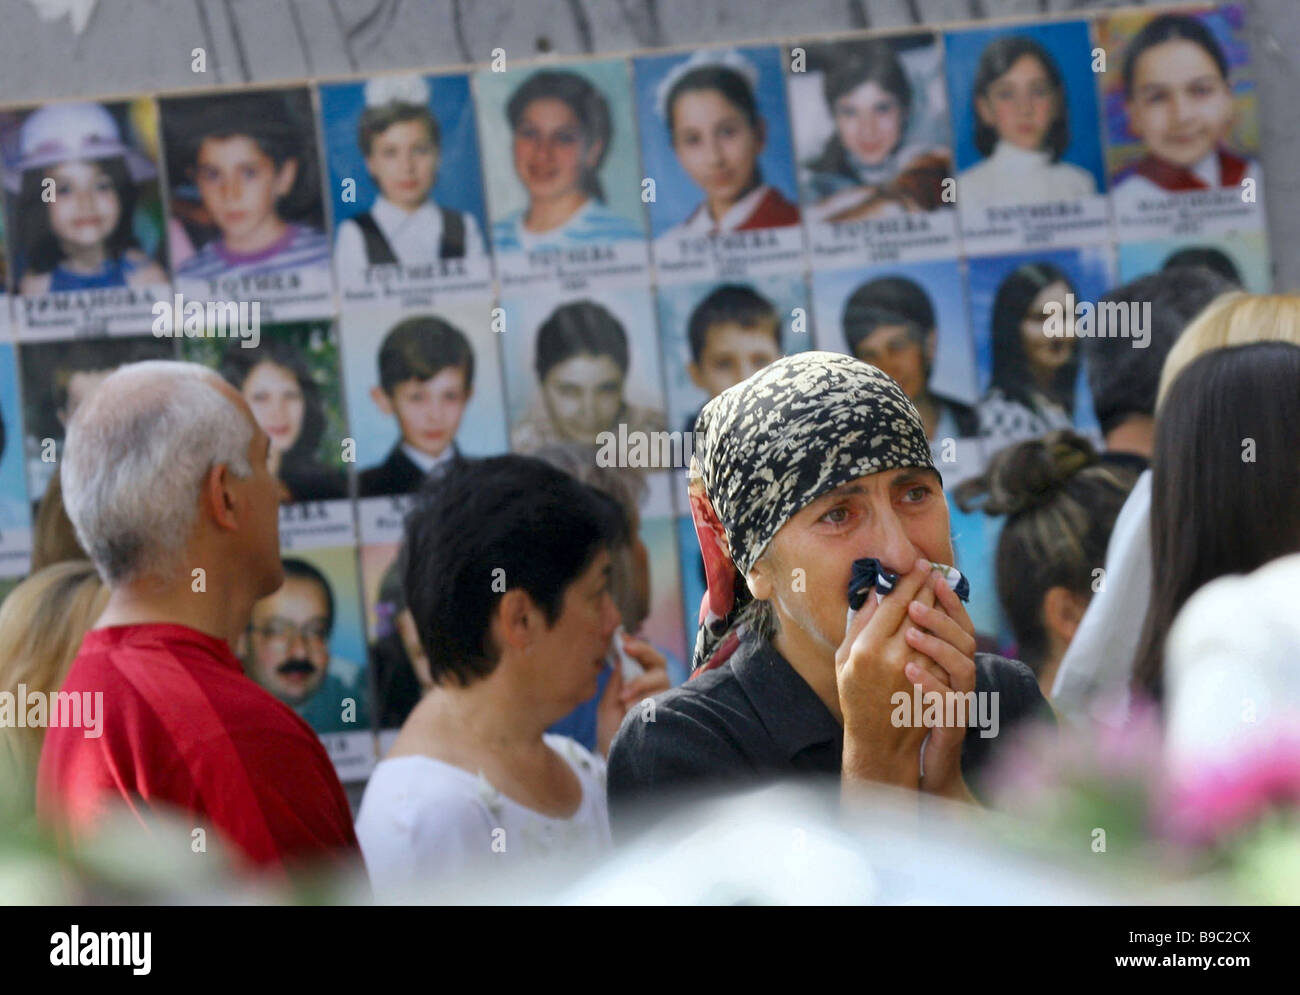 Relatives of the Beslan 2004 school tragedy victims at the wall with photographs - Stock Image